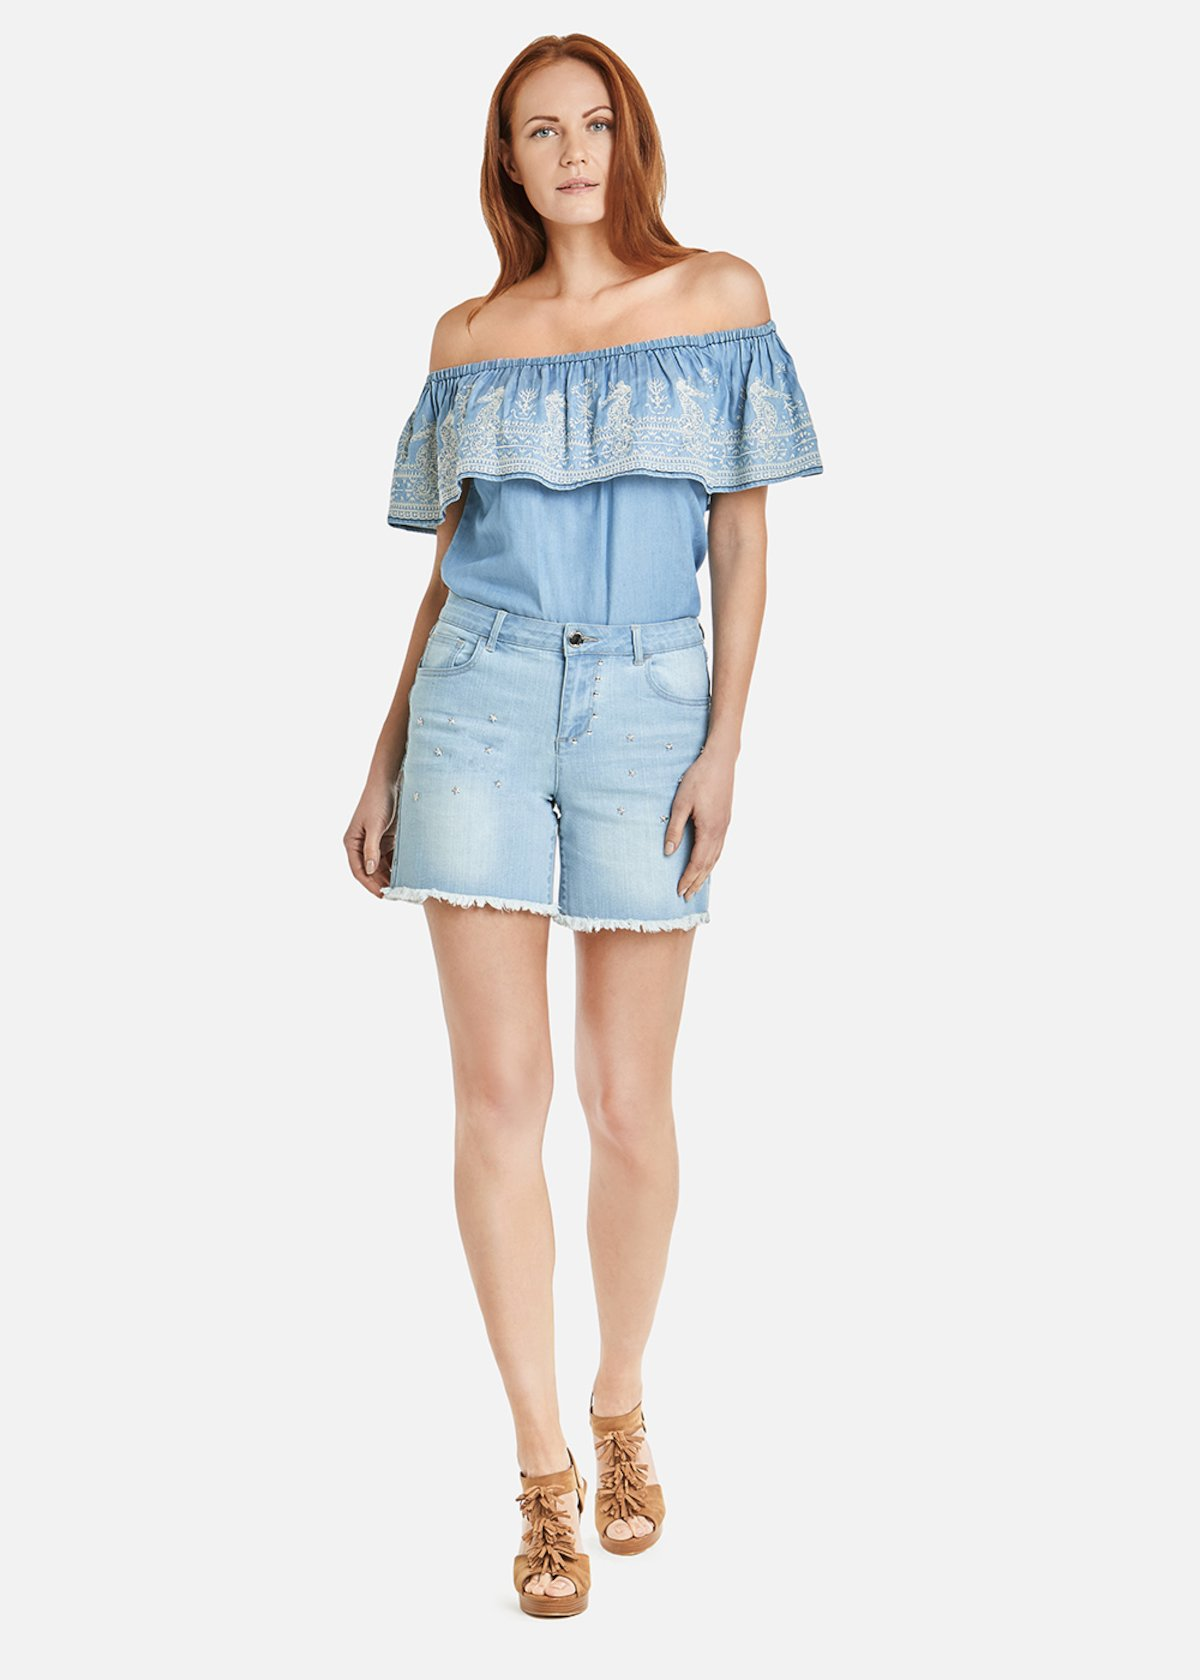 Brian light denim shorts - Light Denim